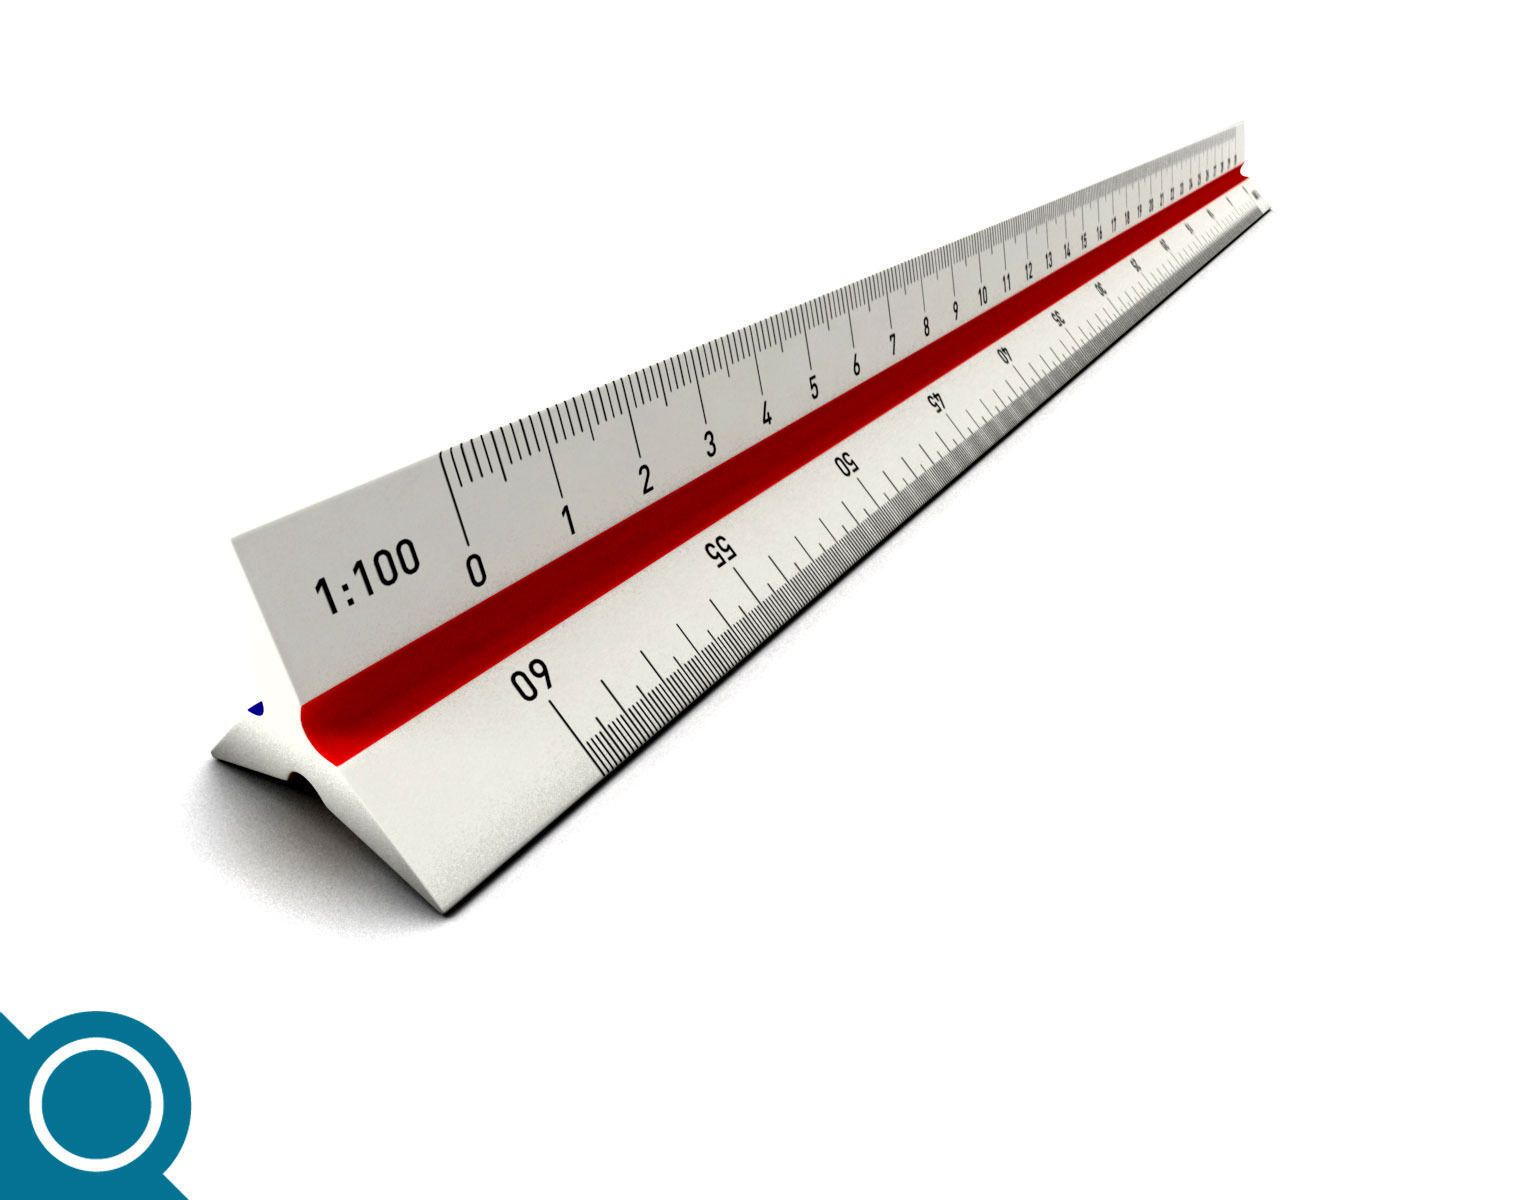 Architect Scale Ruler By Dendrobyte You Can Buy This 3d